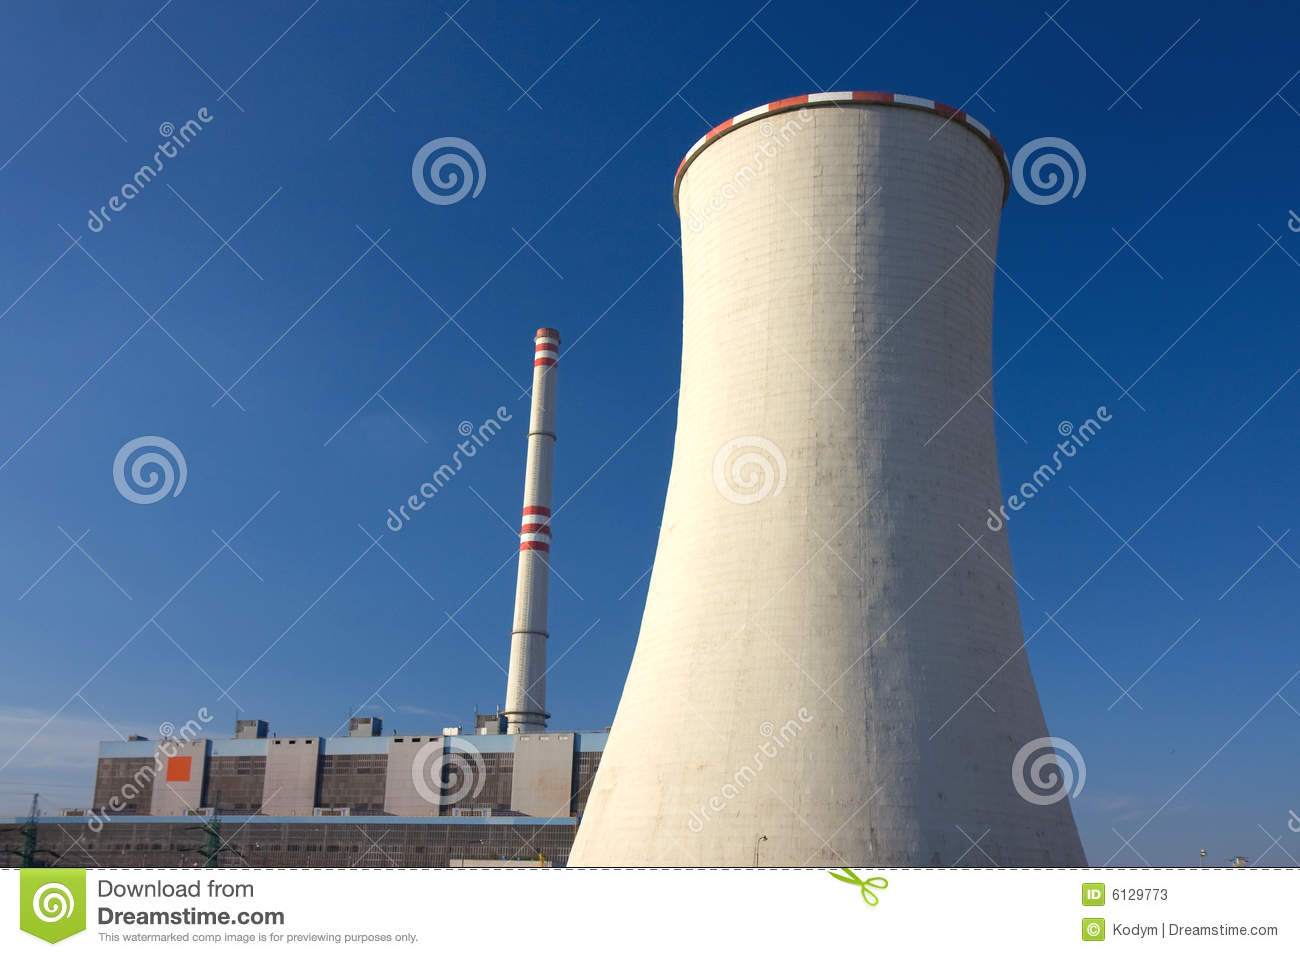 Coal power-plant and cooling-tower.